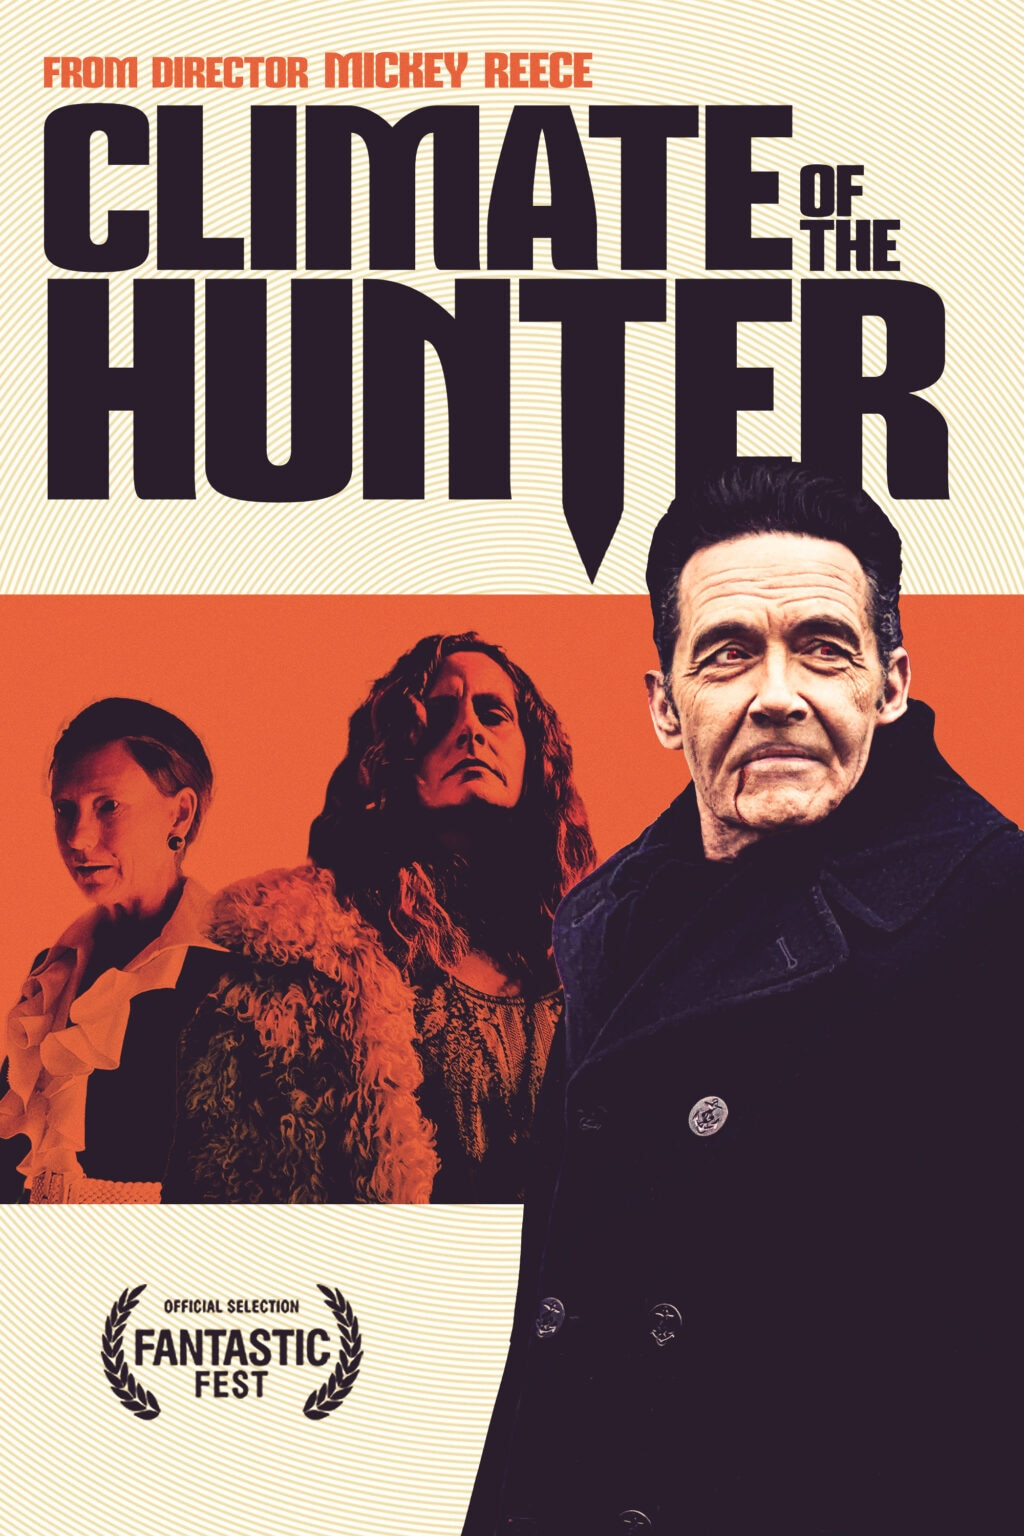 ClimateOfTheHunter Keyart 2x3 2000x3000 1024x1536 - Exclusive Interview: Accidental Auteur Mickey Reece Talks CLIMATE OF THE HUNTER